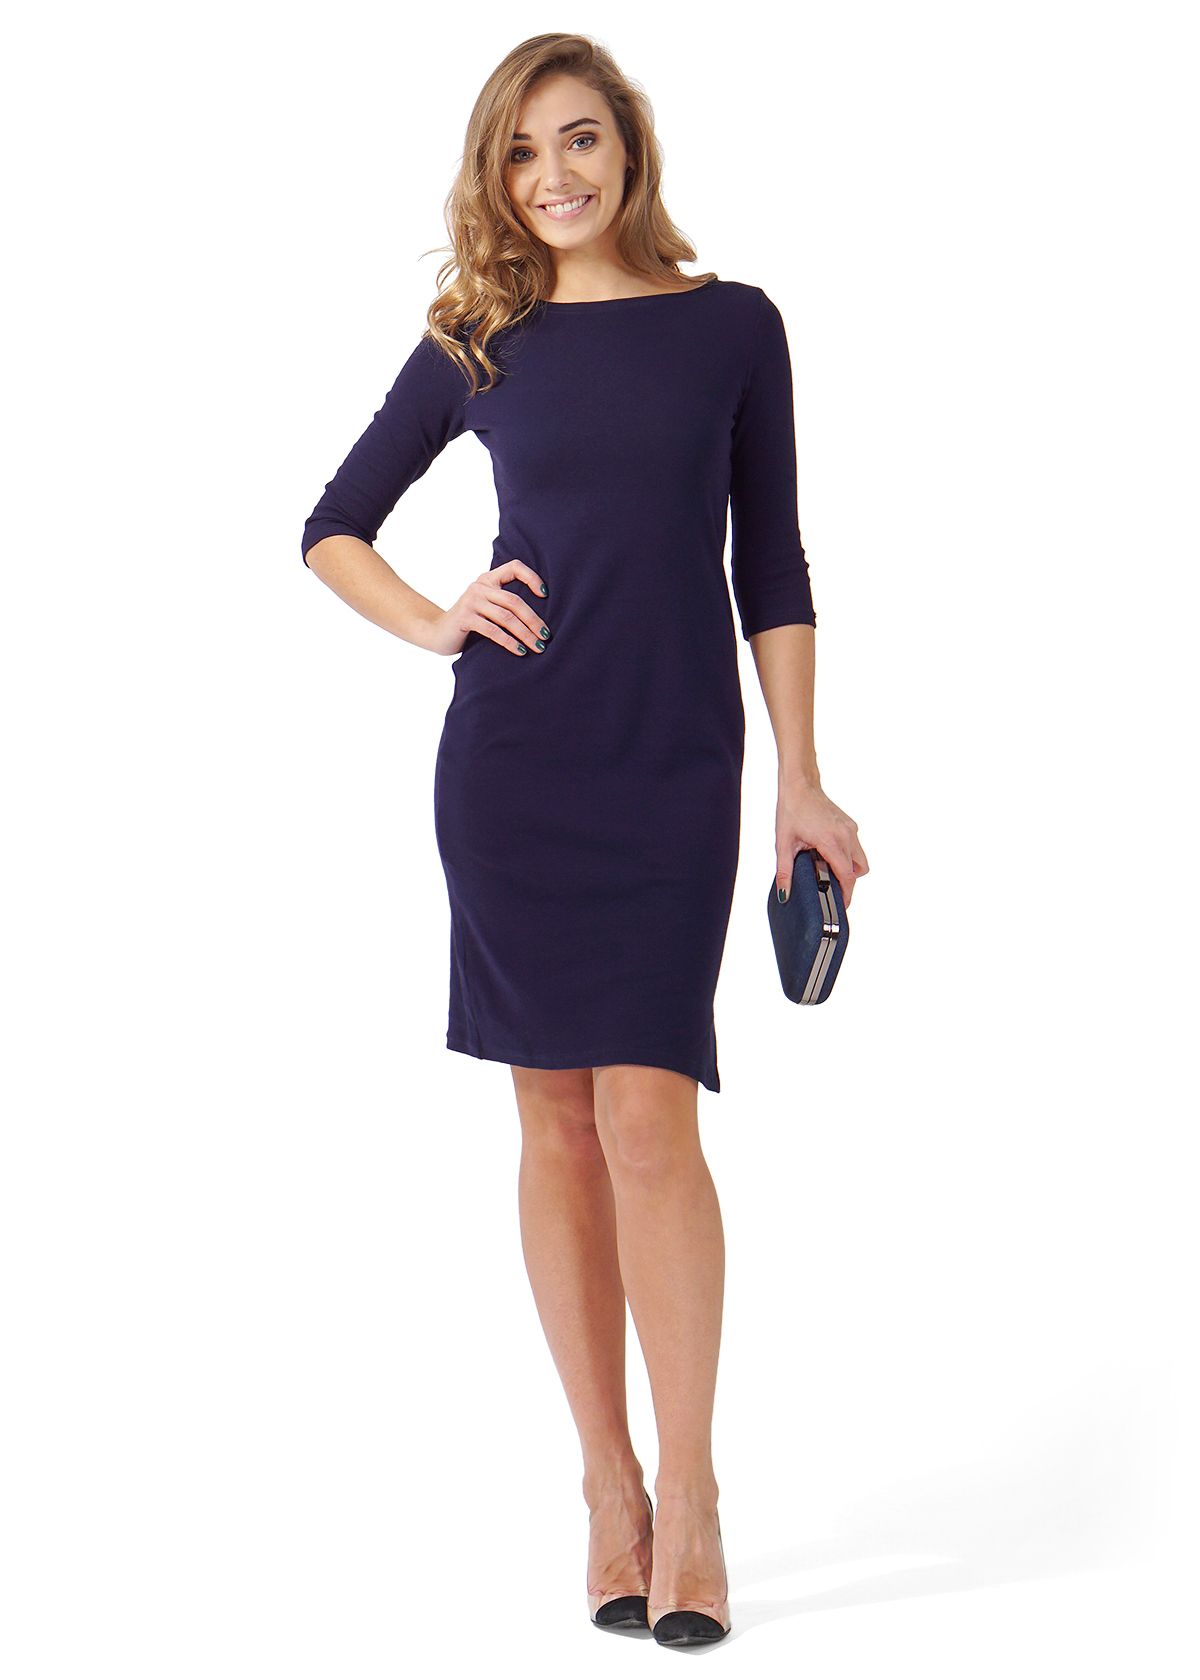 marissa maternity dress colour dark blue marissa maternity dress colour dark blue ombrellifo Images